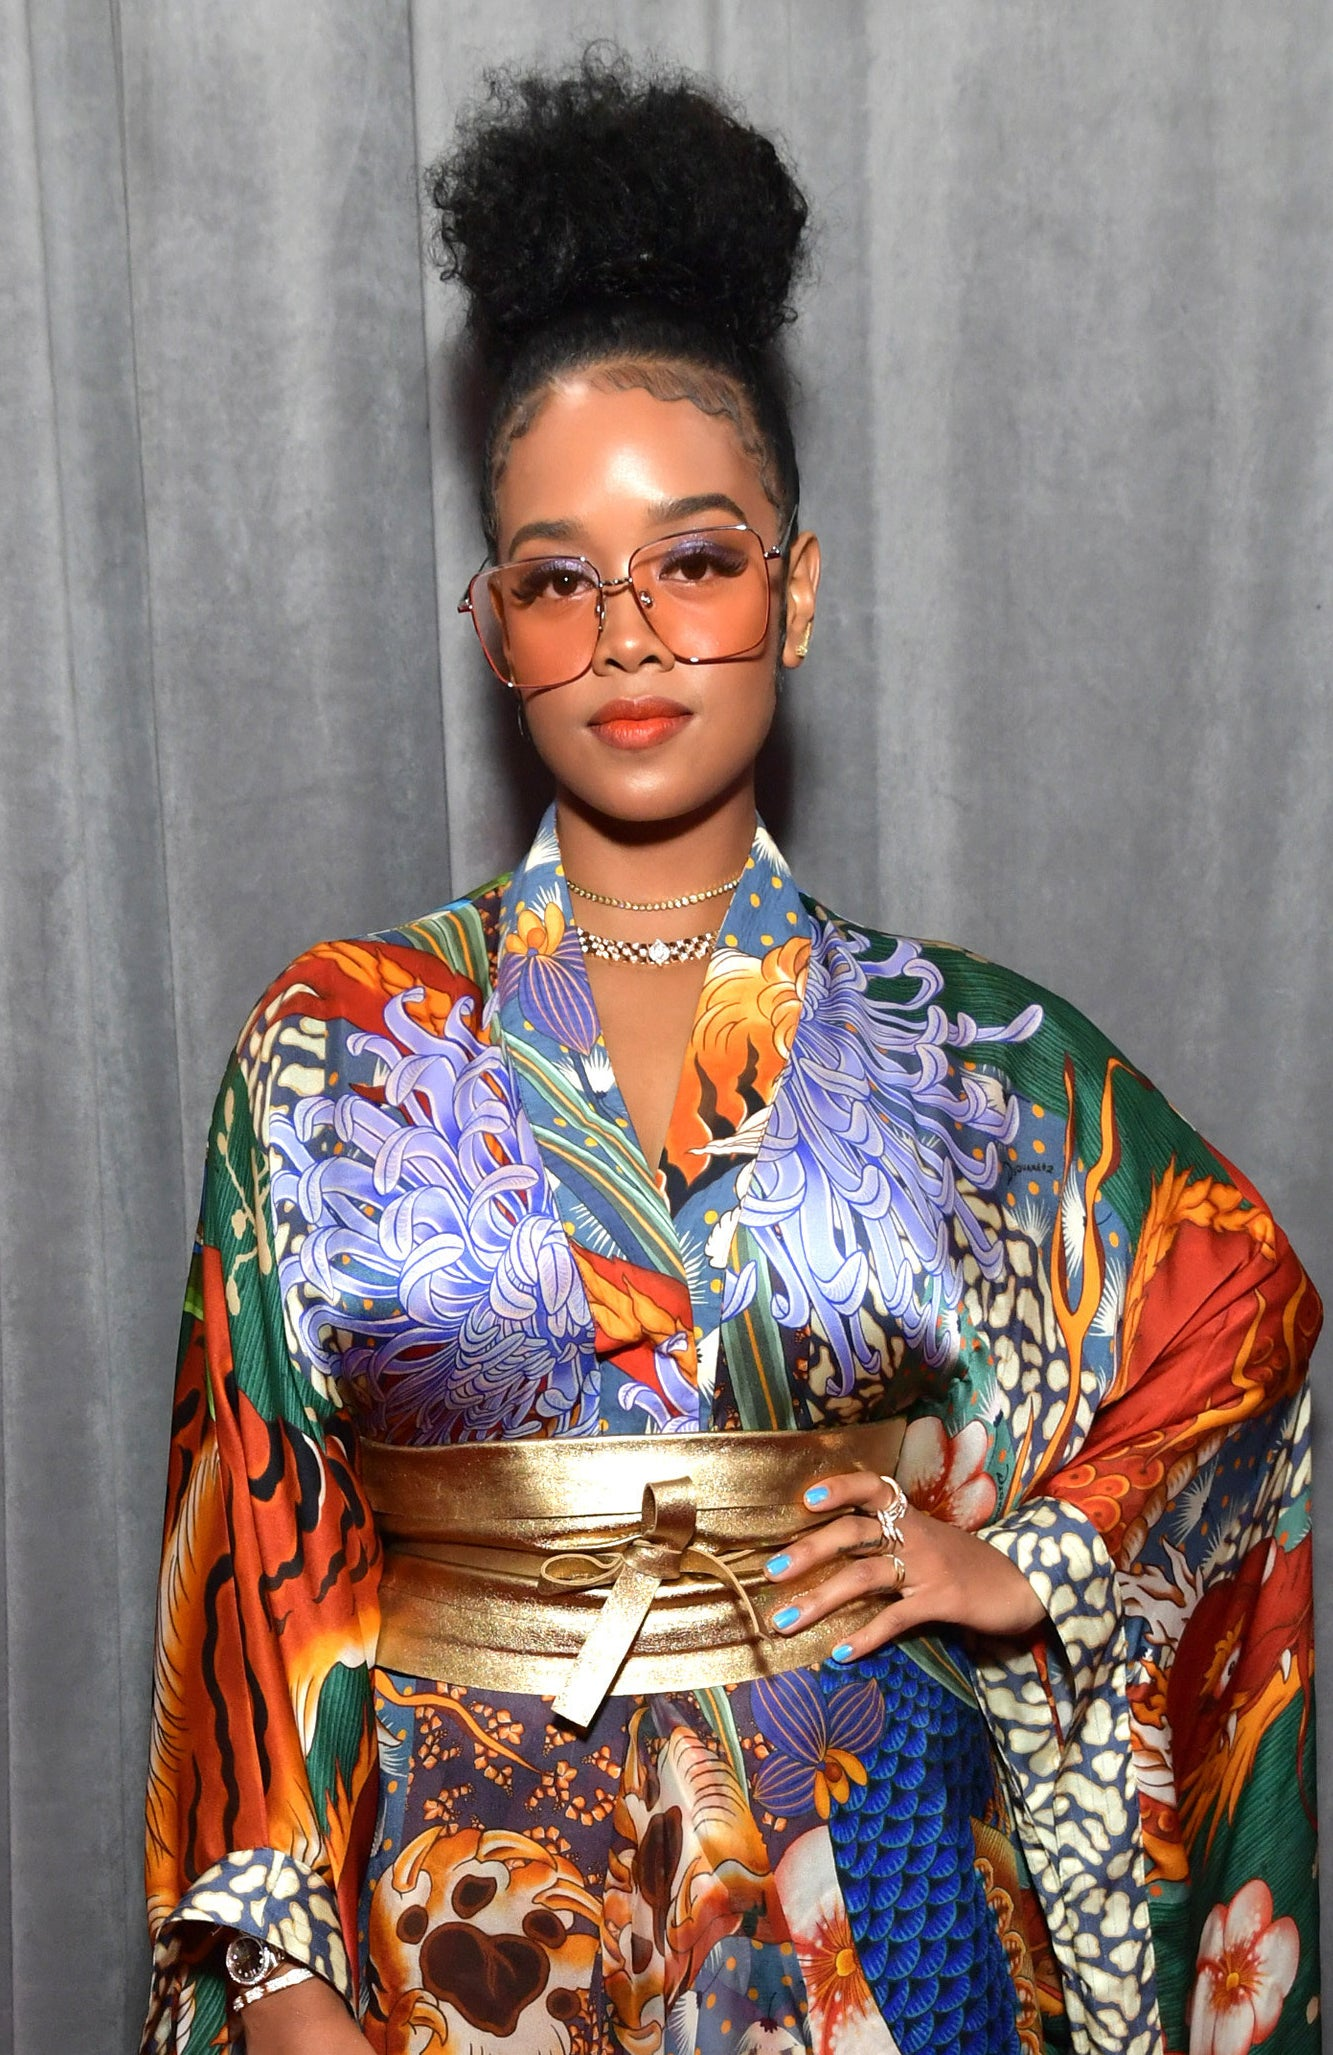 H.E.R. wearing sunglasses and a kimono